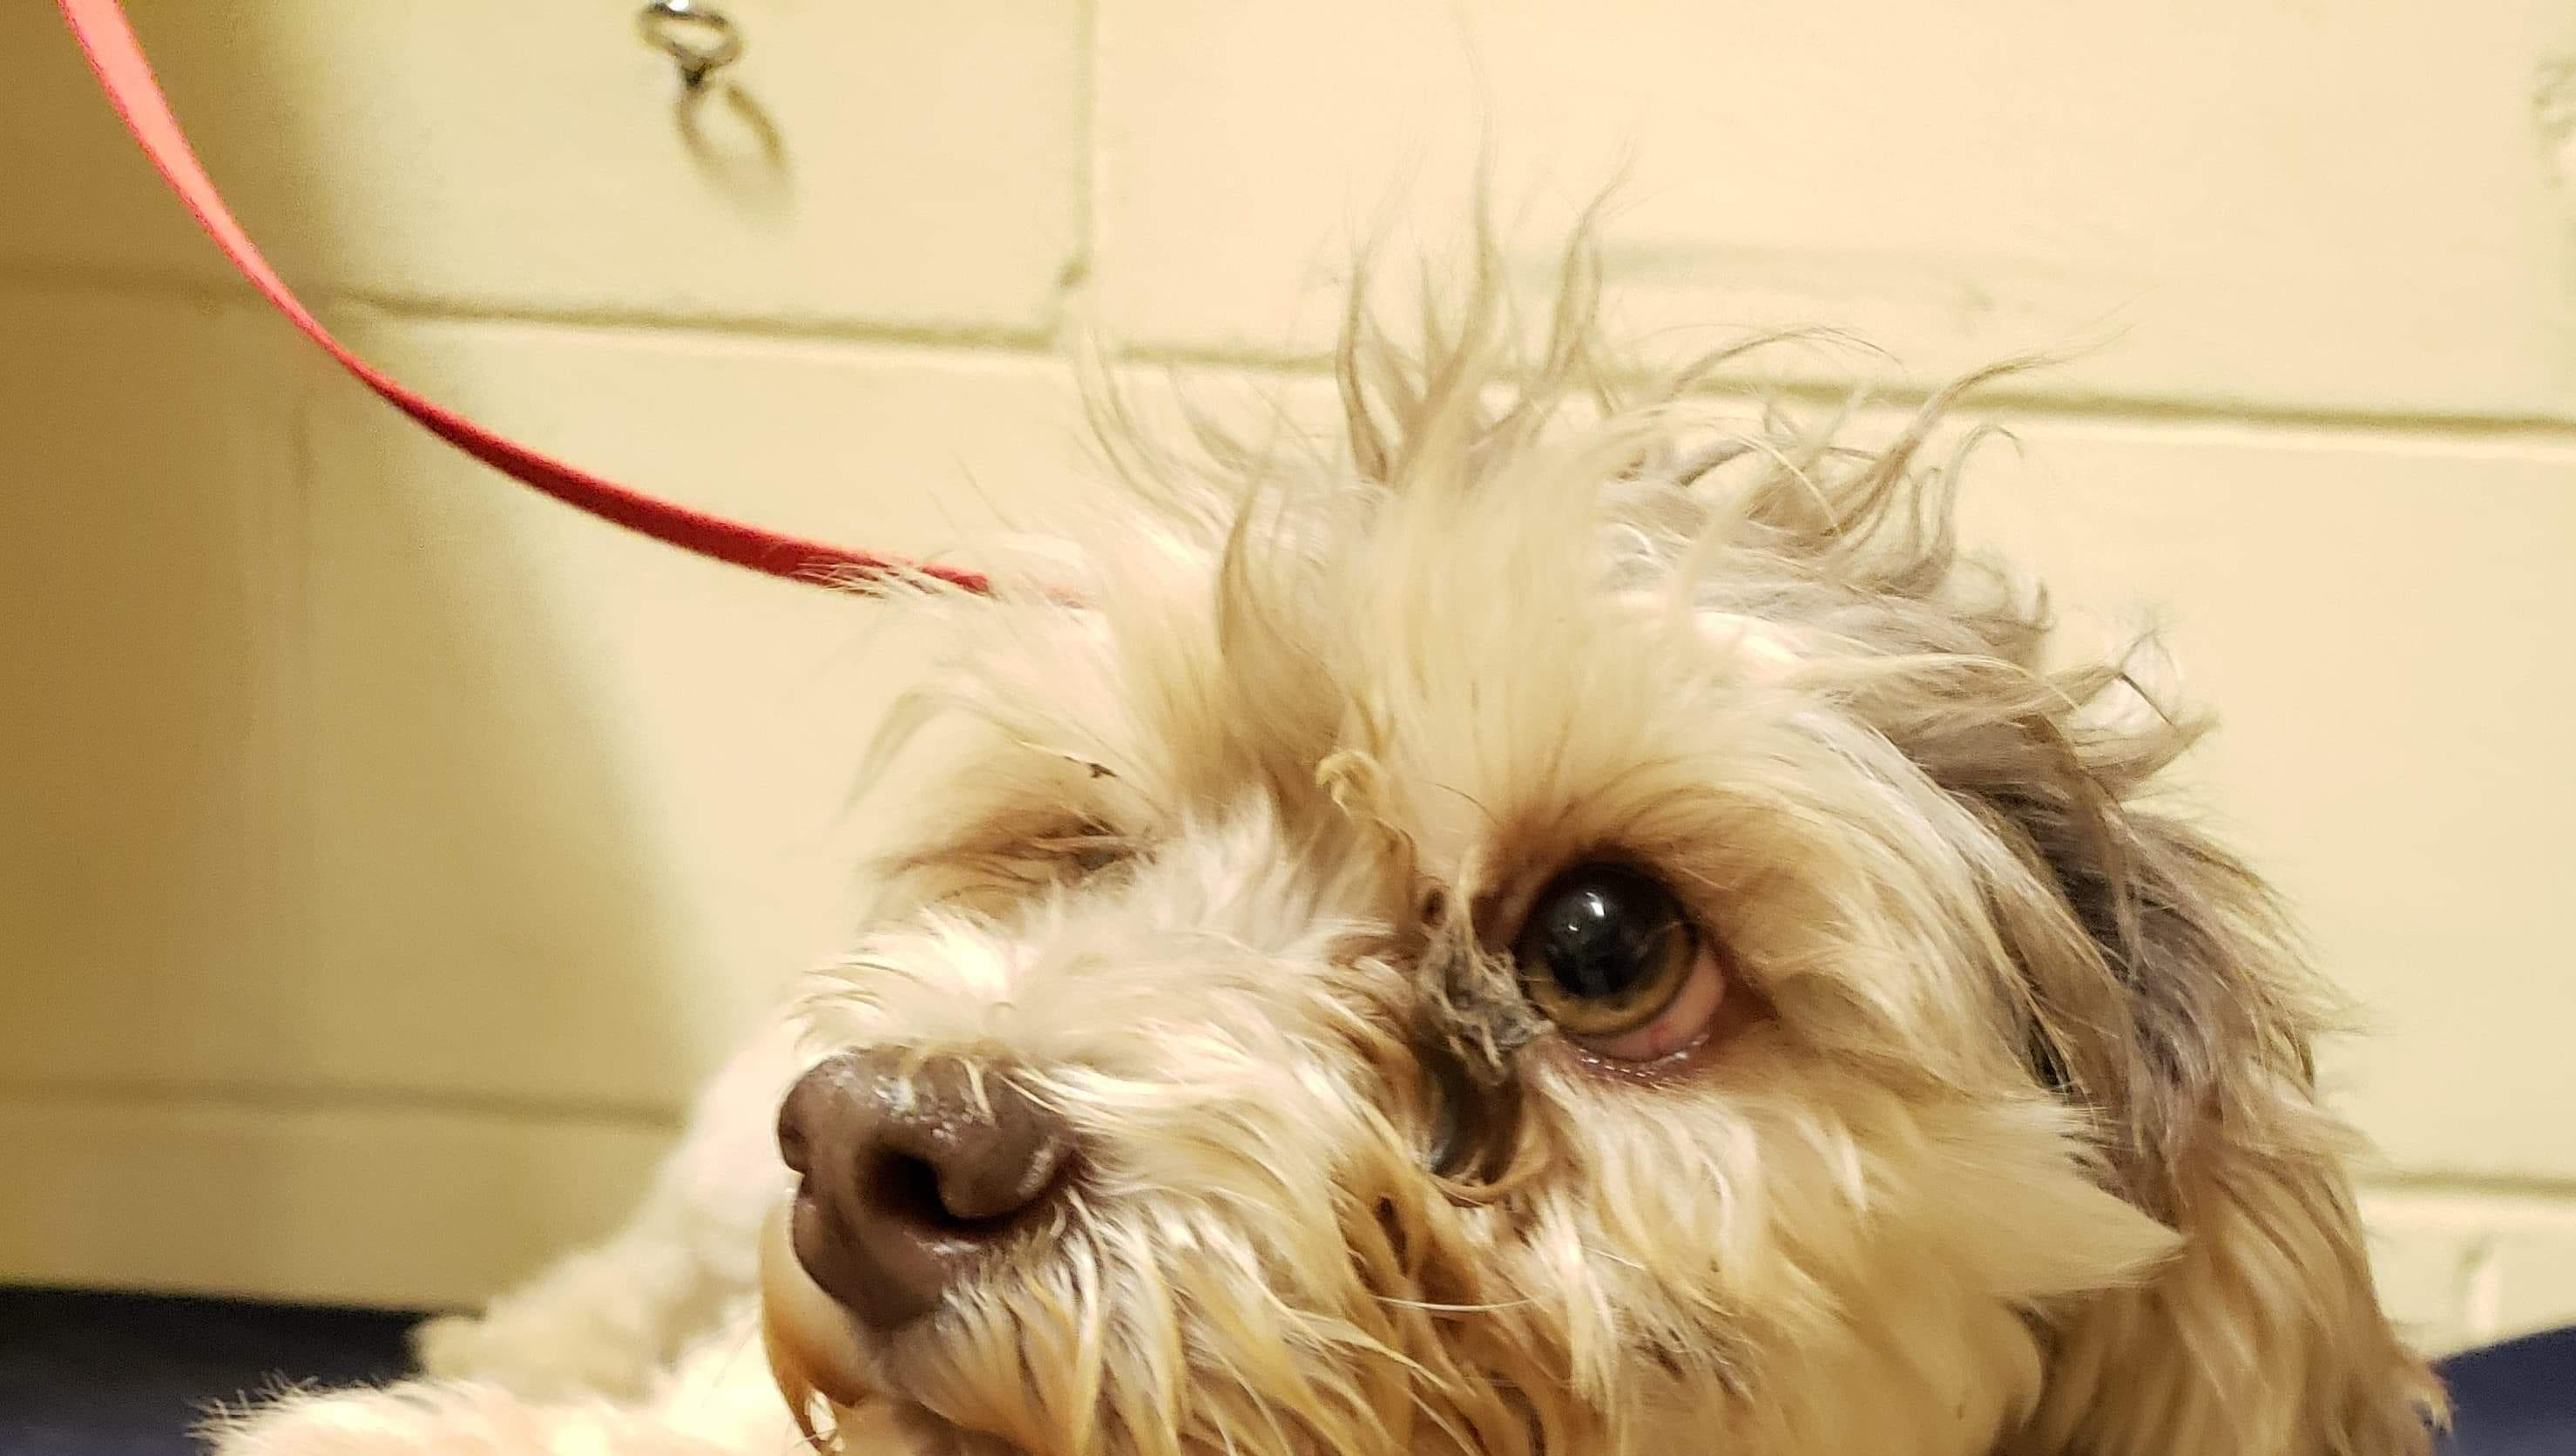 Five Havanese dogs arrived at the Somerset Regional Animal Shelter that were rescued from a home in Shamong.